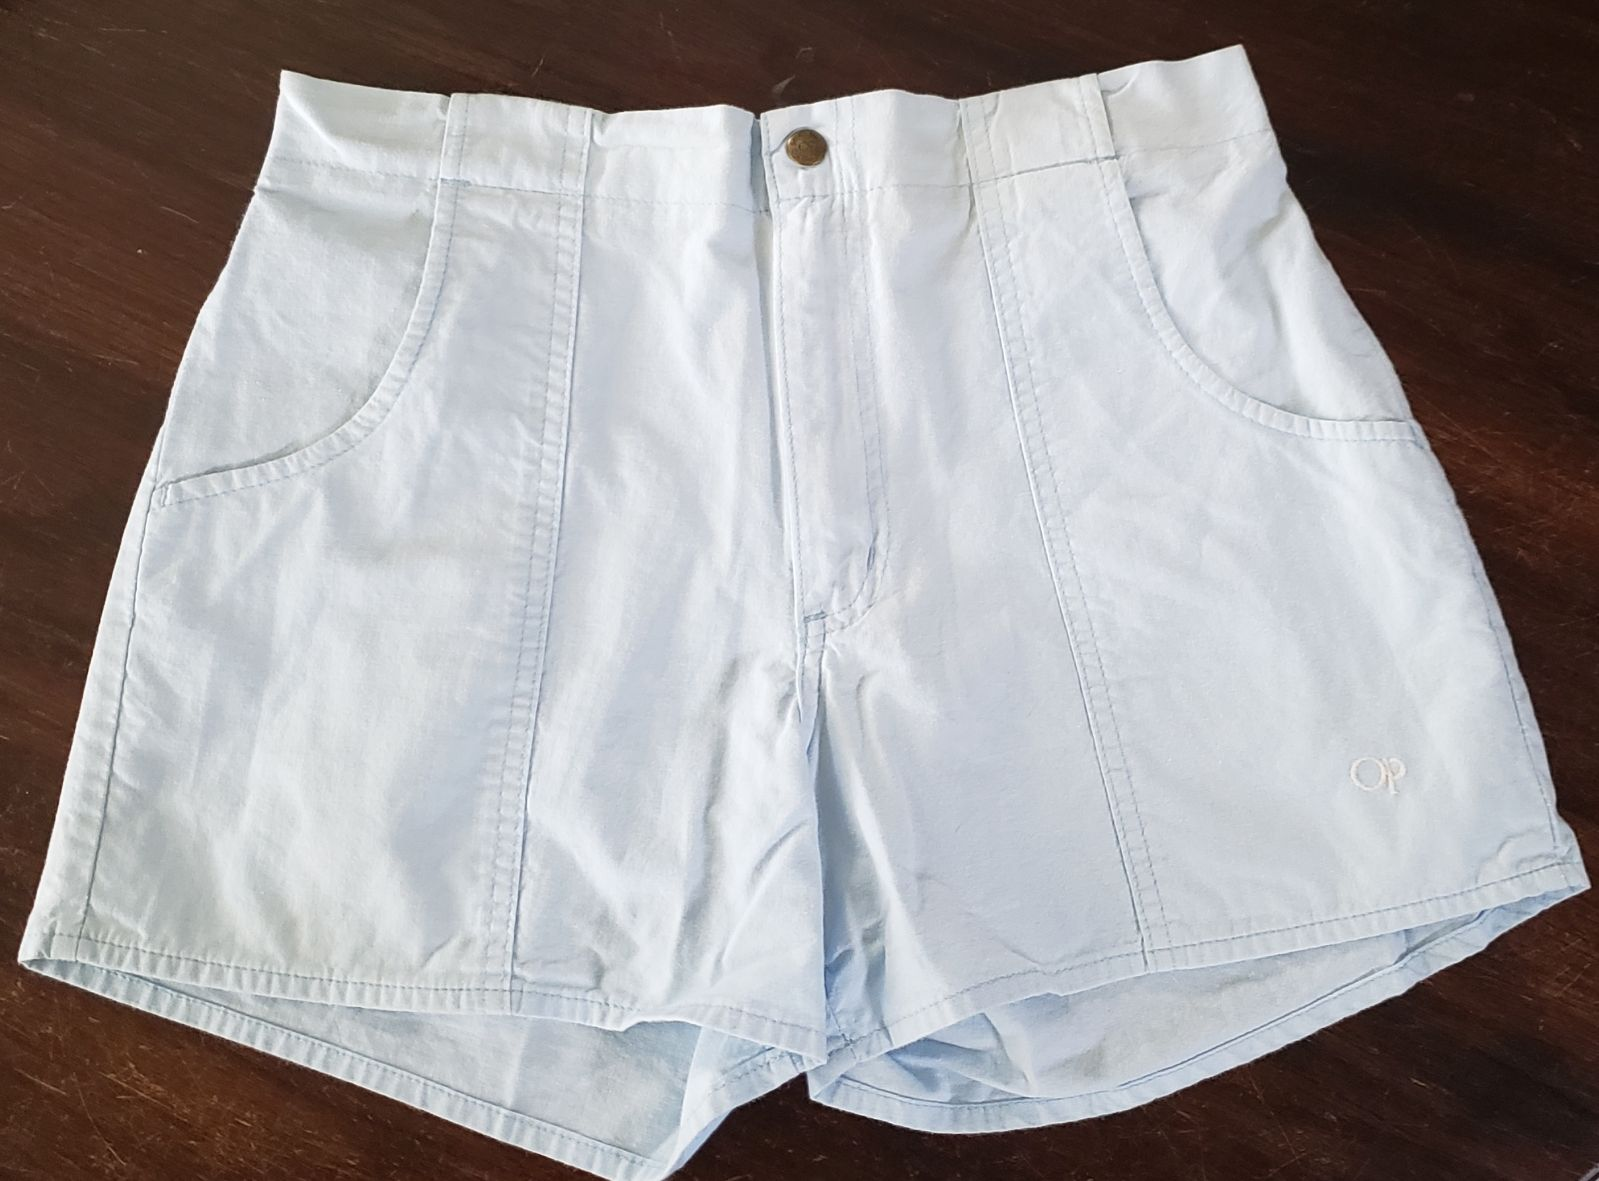 VINTAGE OP SHORTS 80's above the knee